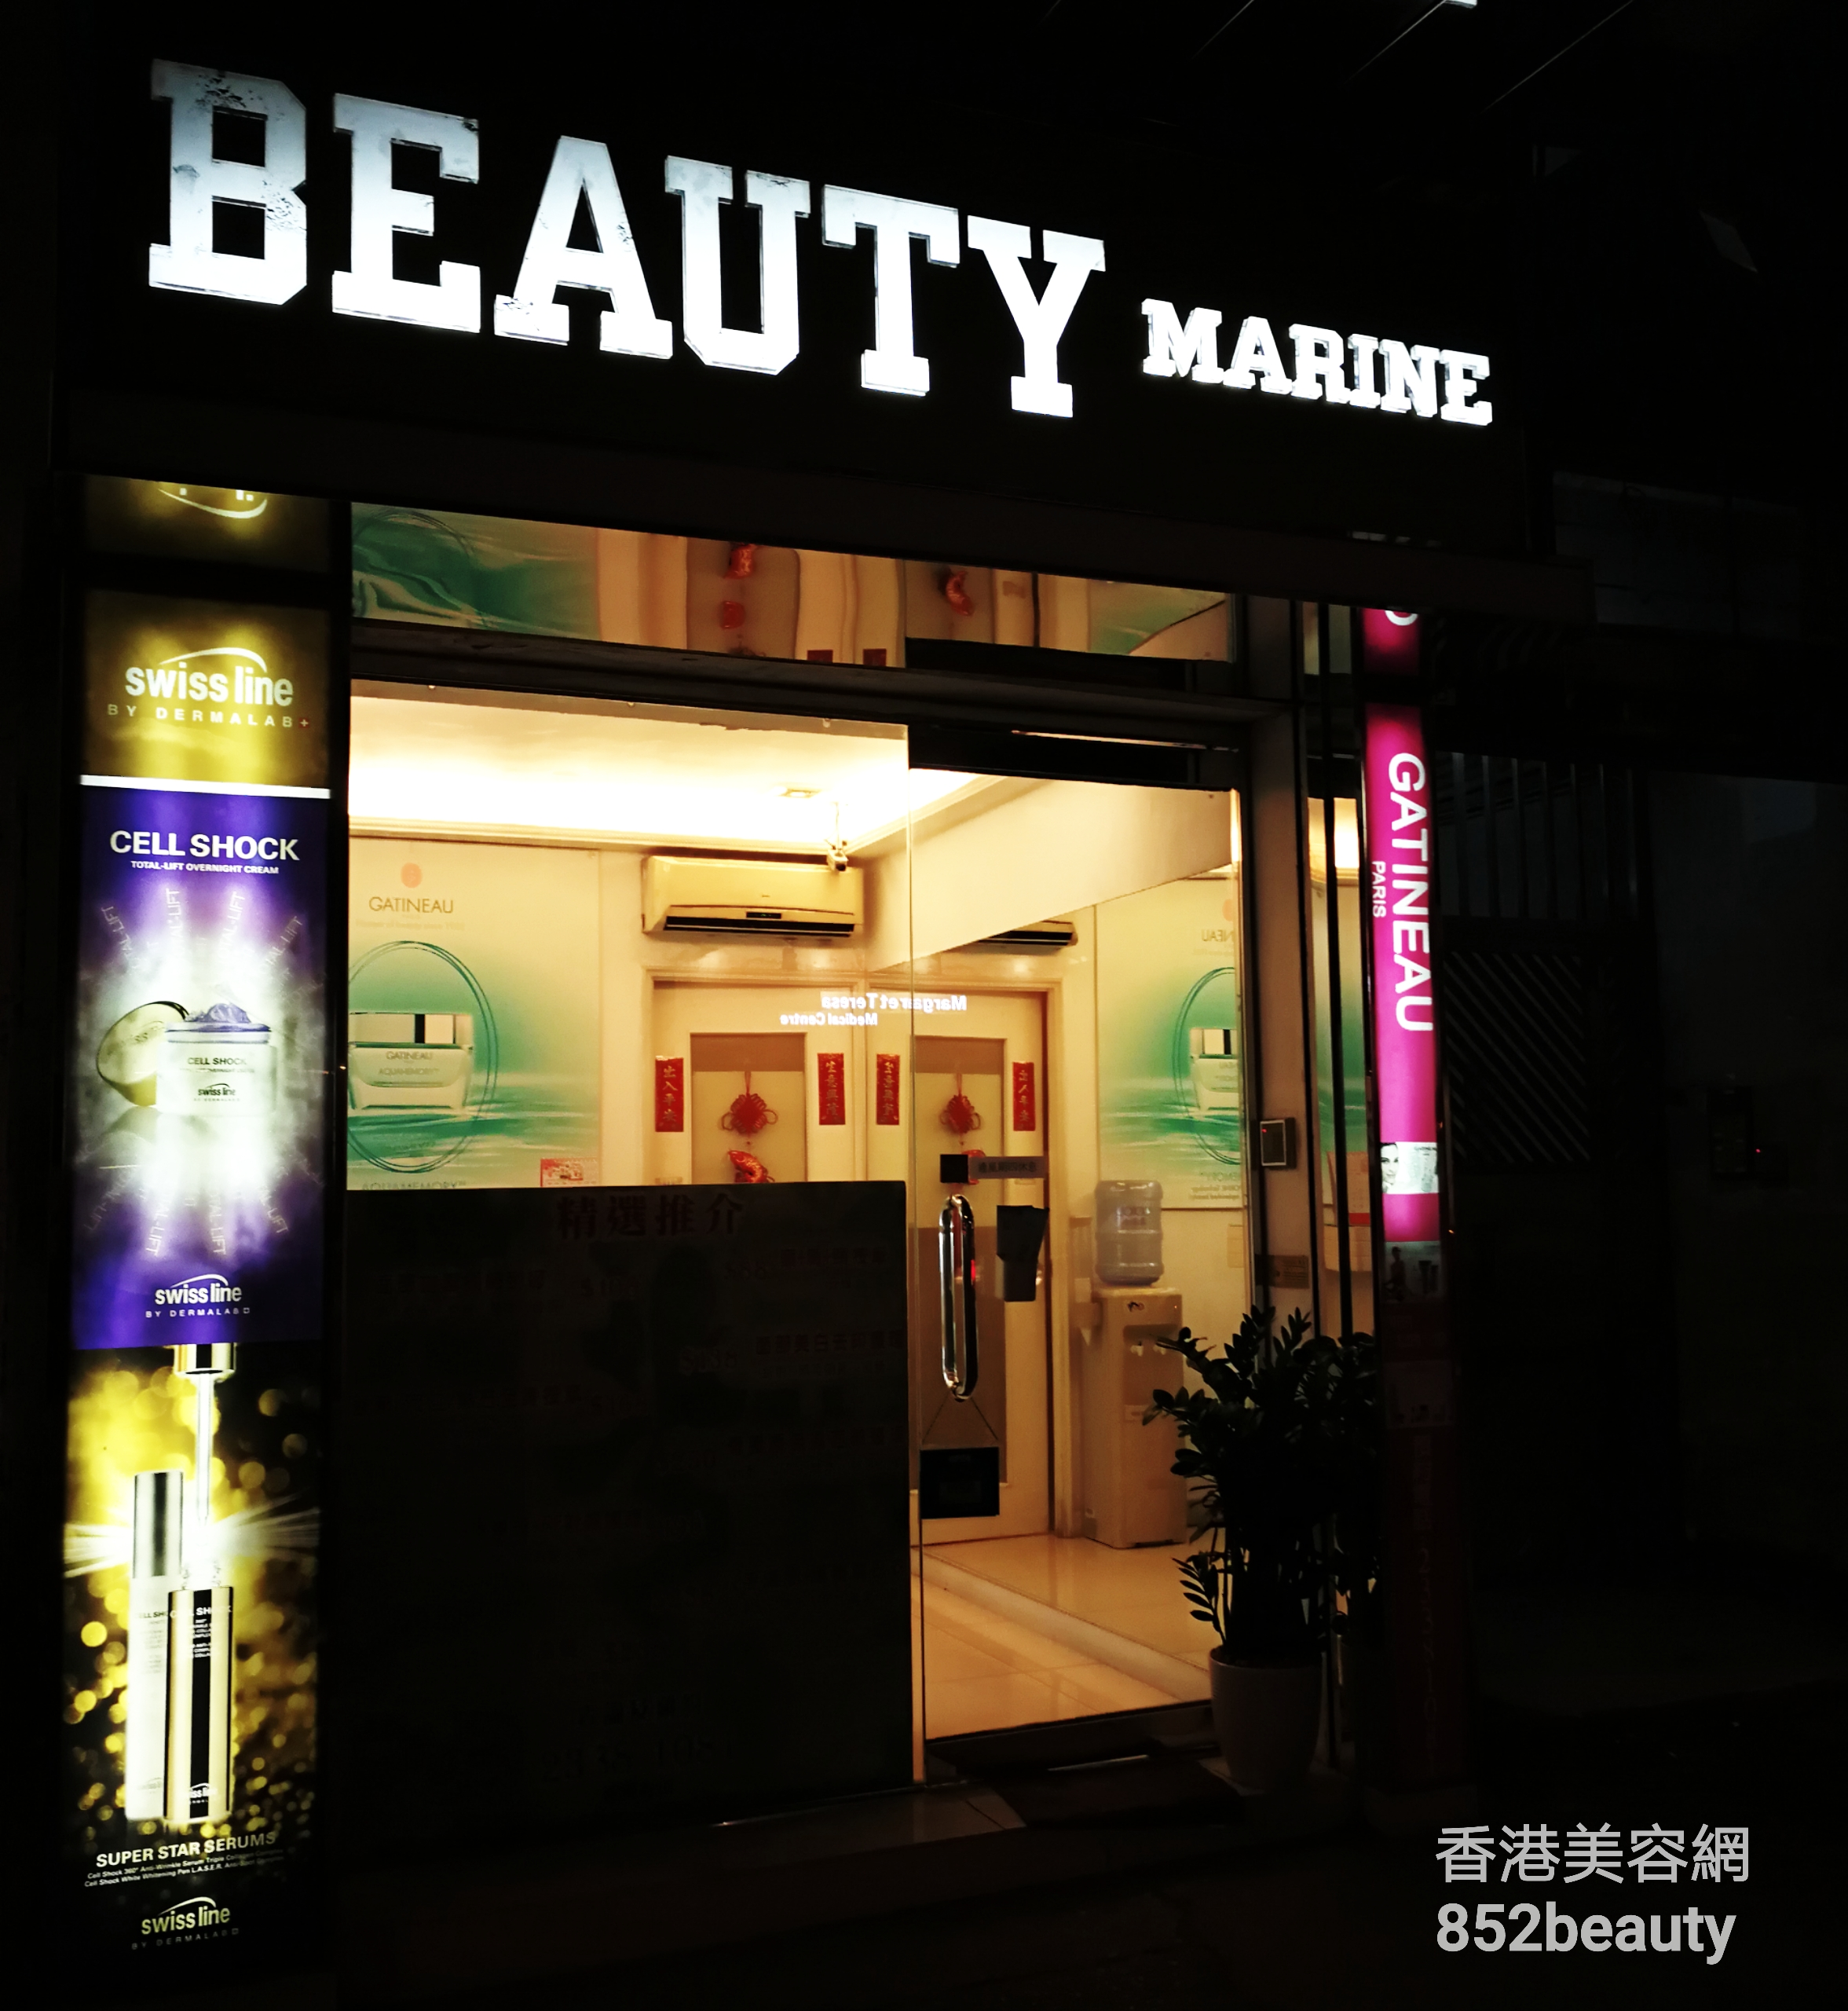 Beauty Marine